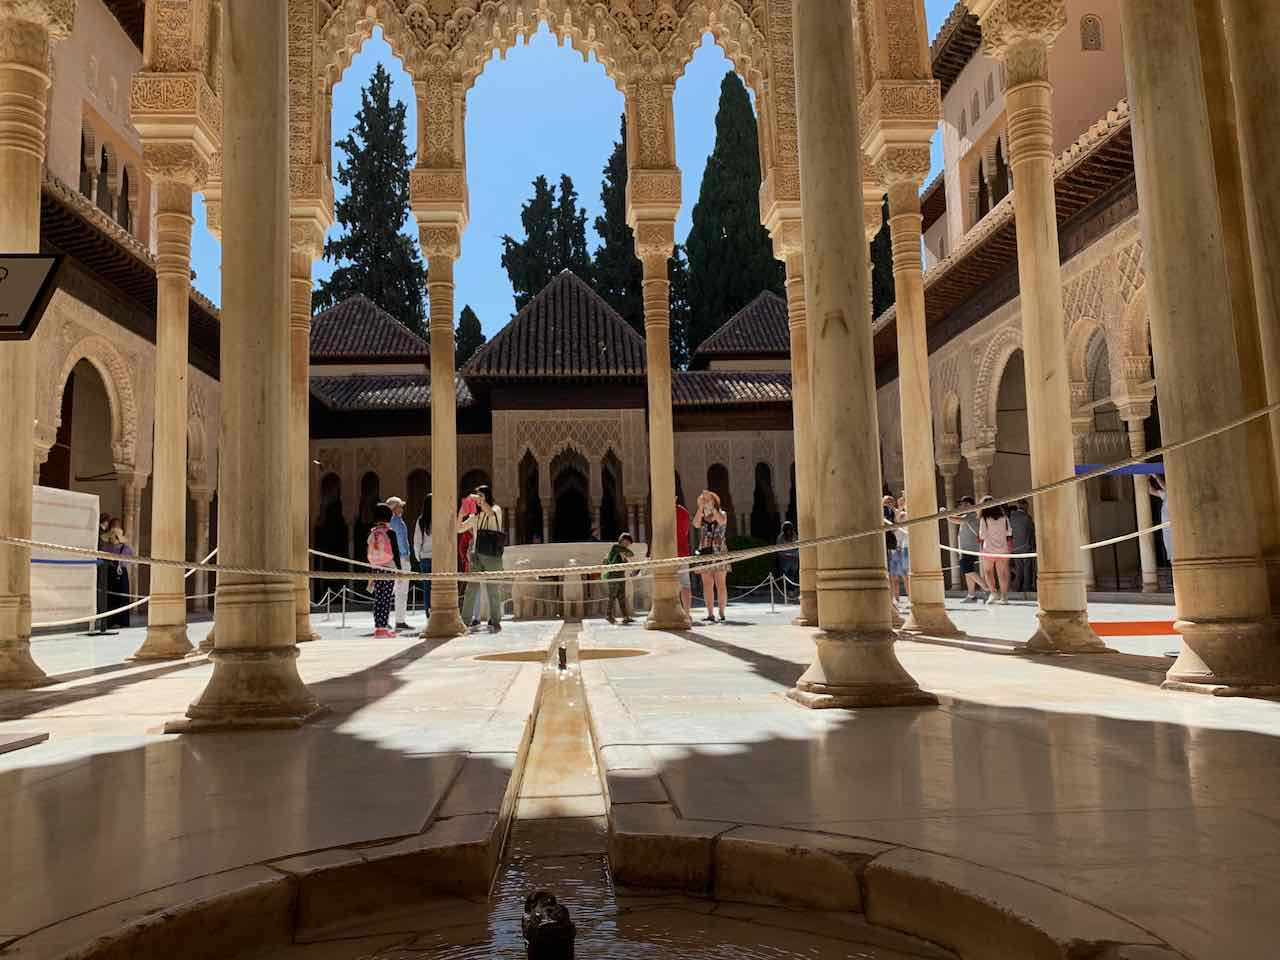 The Alhambra, the Generalife and the Albaicín of Granada